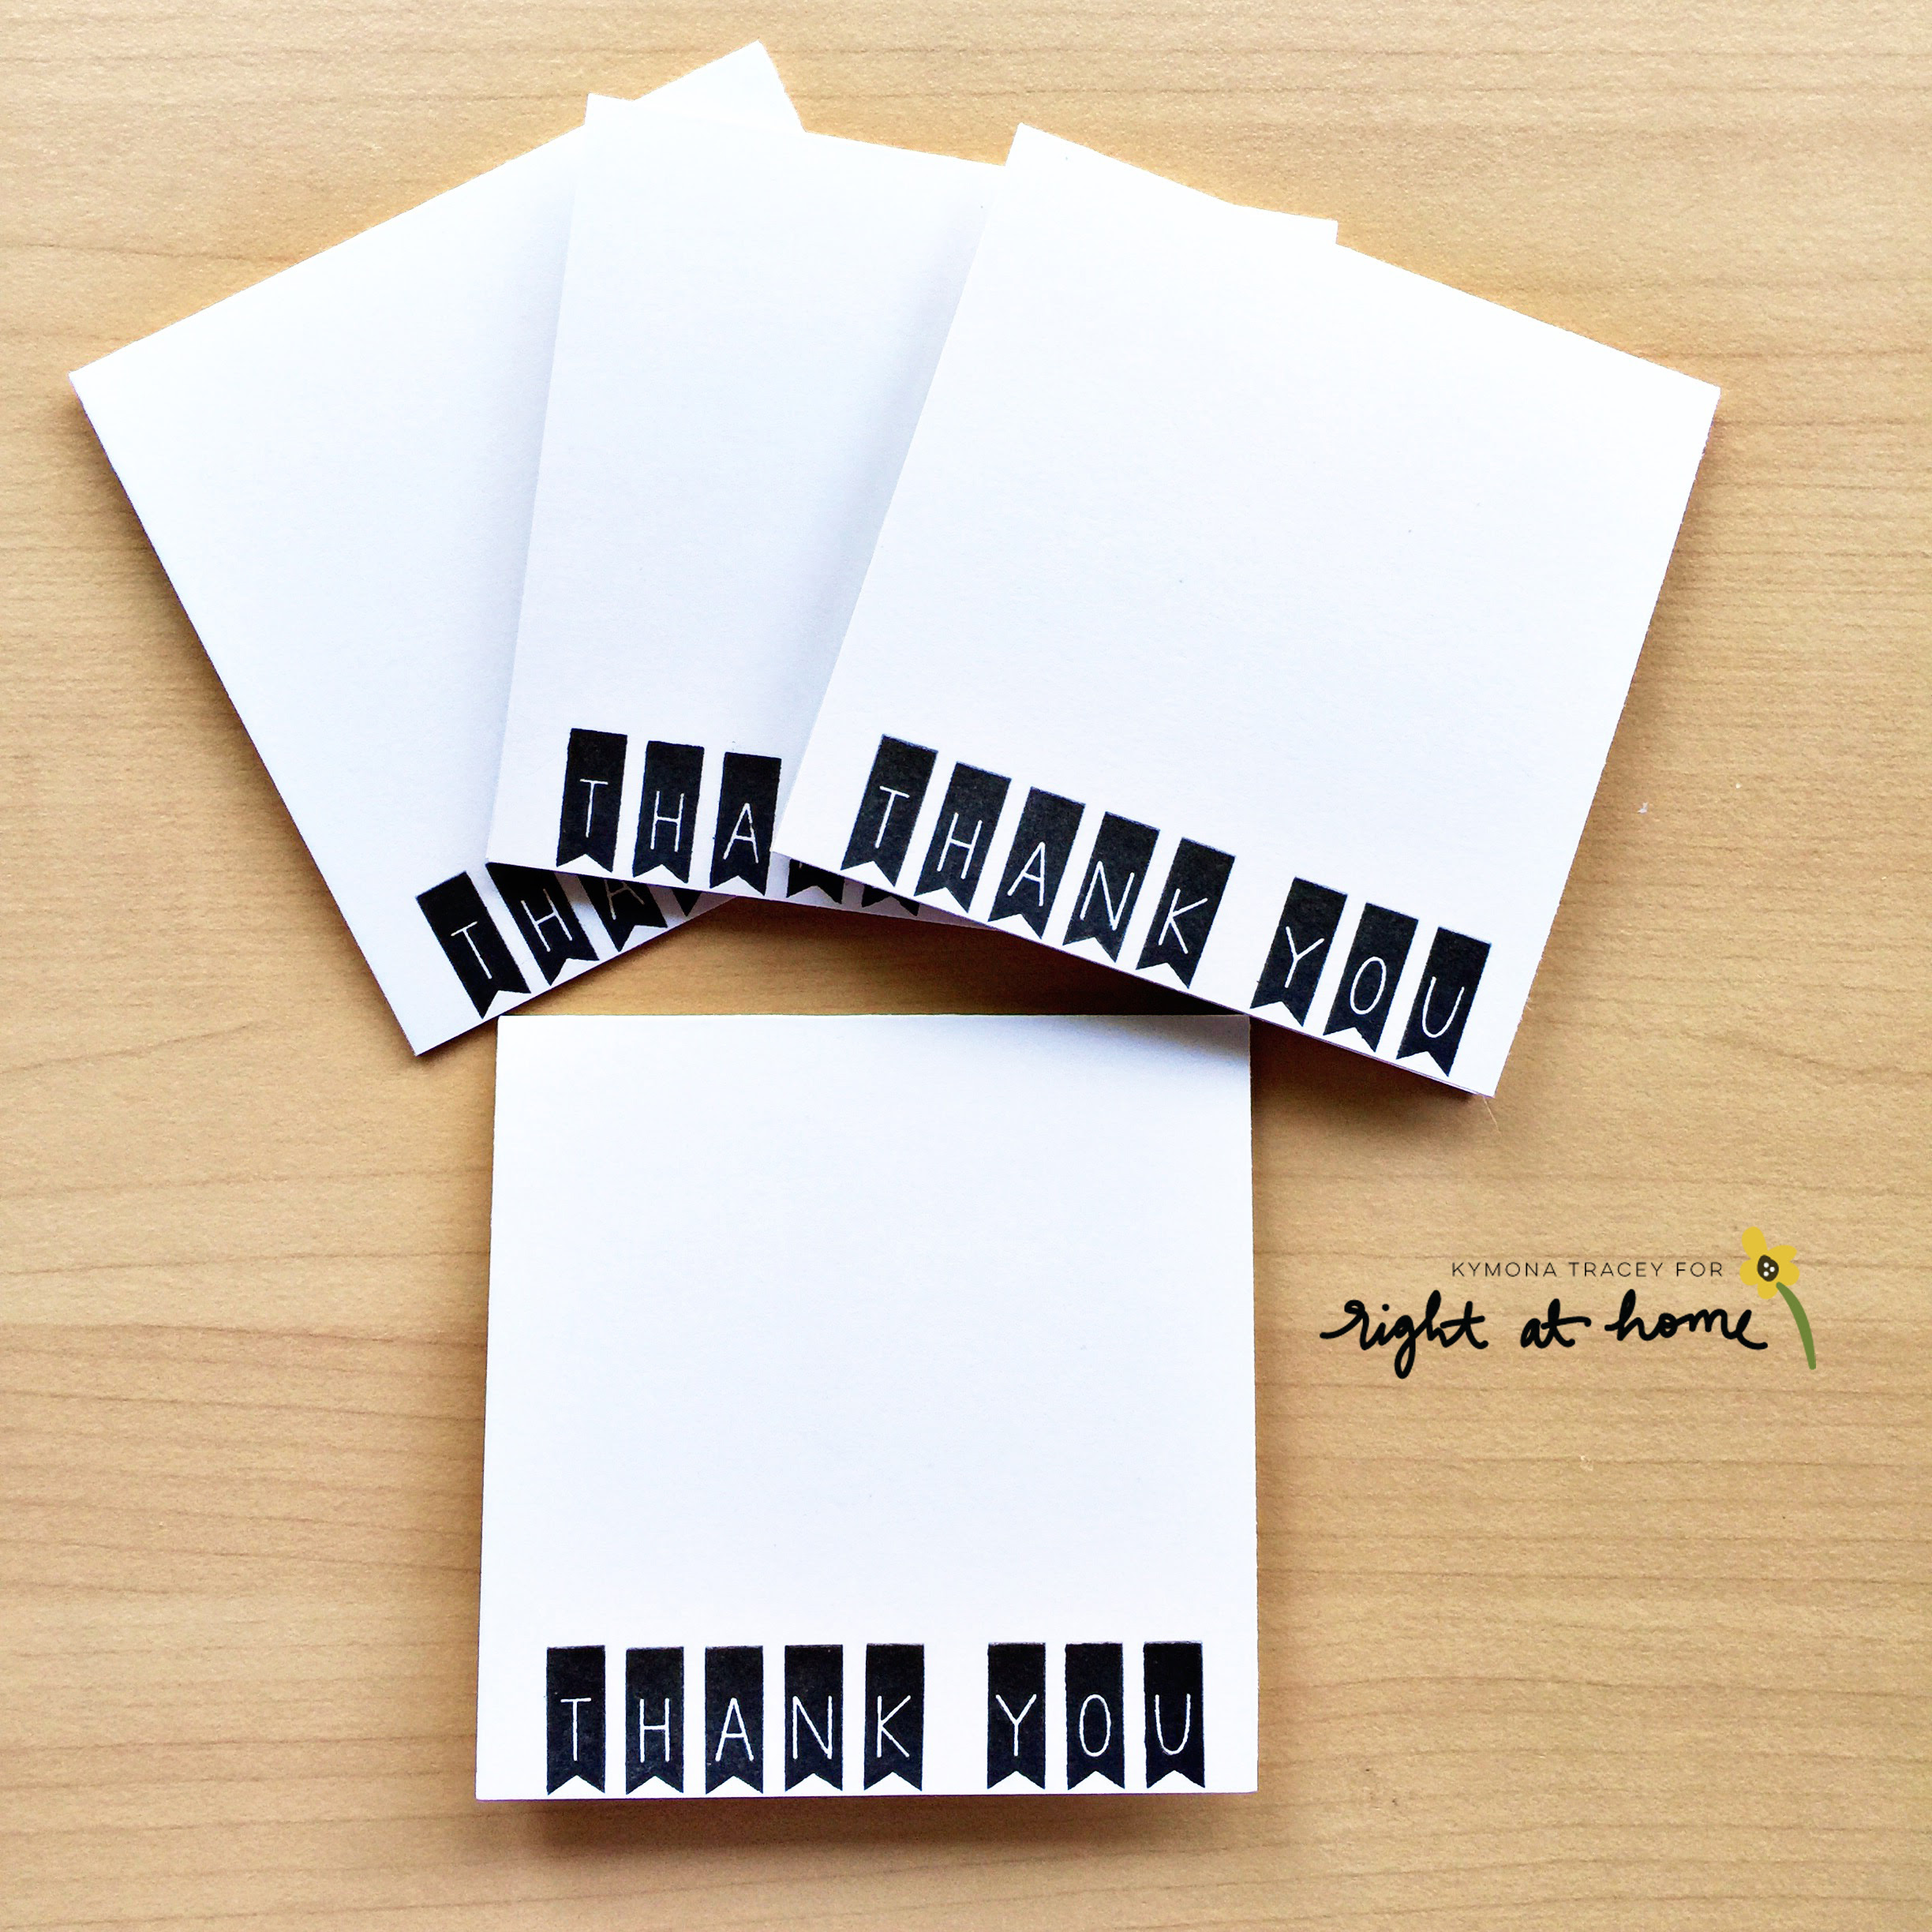 Clean + Simple Thank You Notecard by Kymona // rightathomeshop.com/blog